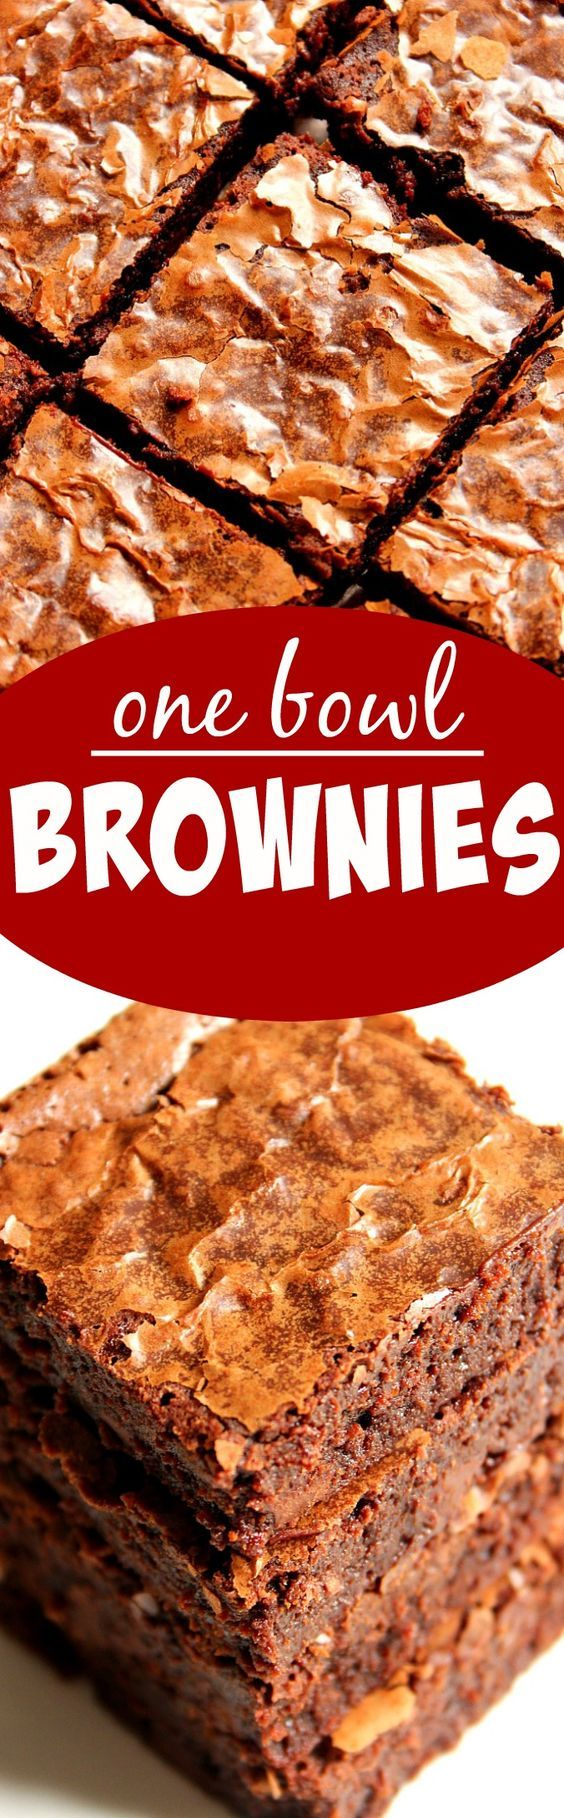 One Bowl Brownies Recipe - homemade from scratch brownies don't get easier than that! They are fudgy with soft, flaky top, melt-in-your-mouth! They taste and look like they were made out of the box mix but are quick, easy and made in one bowl!